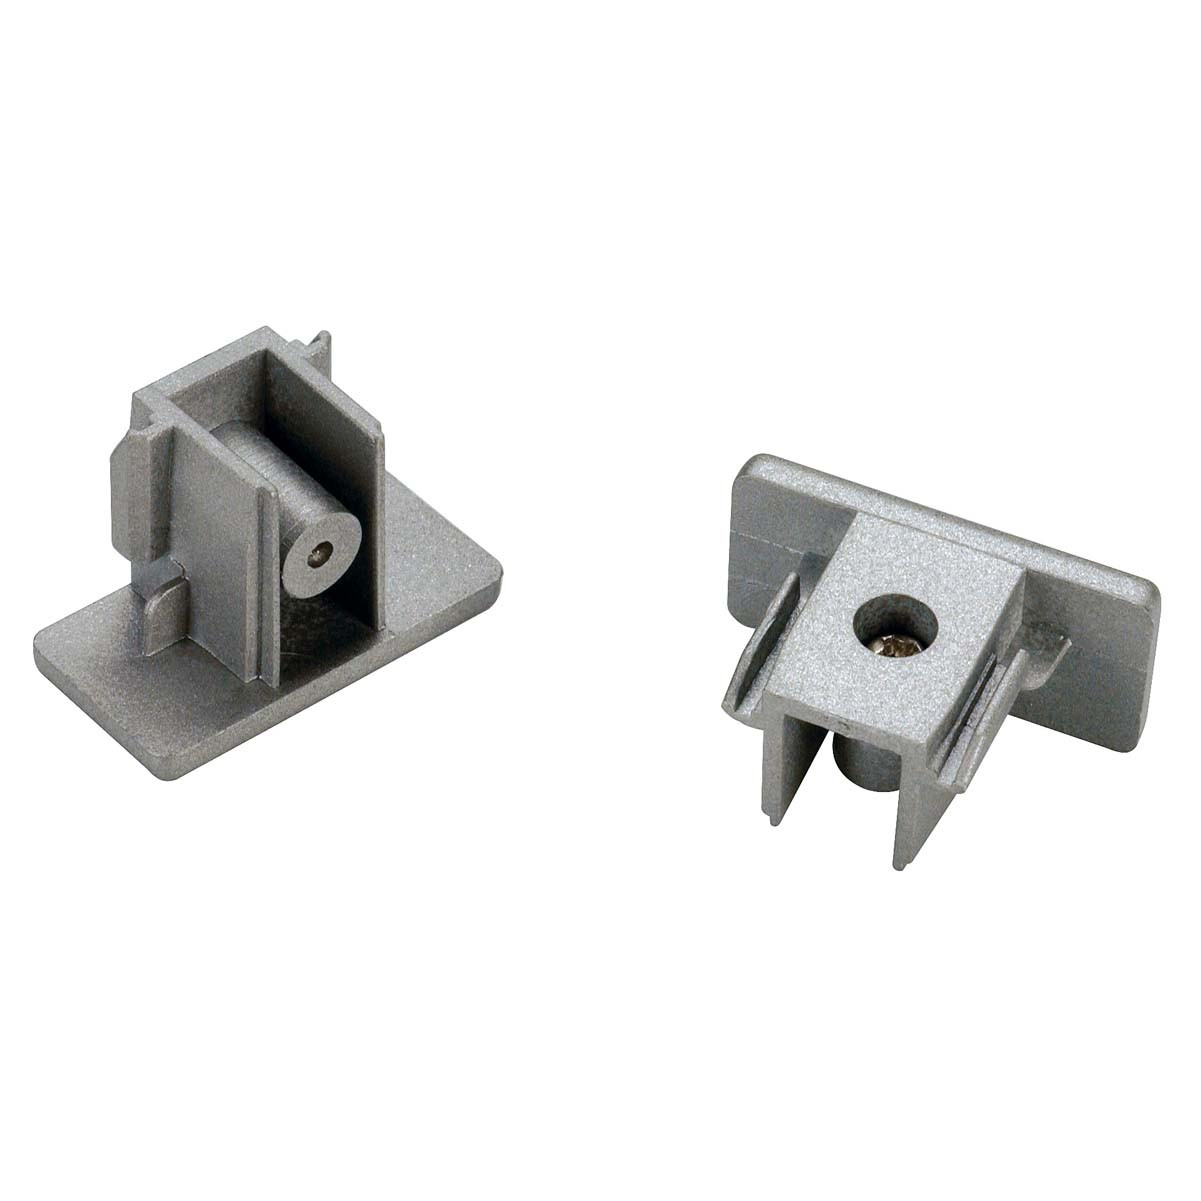 SLV 143132 End Caps Silver Grey 1 Circuit 240V Track Accessory